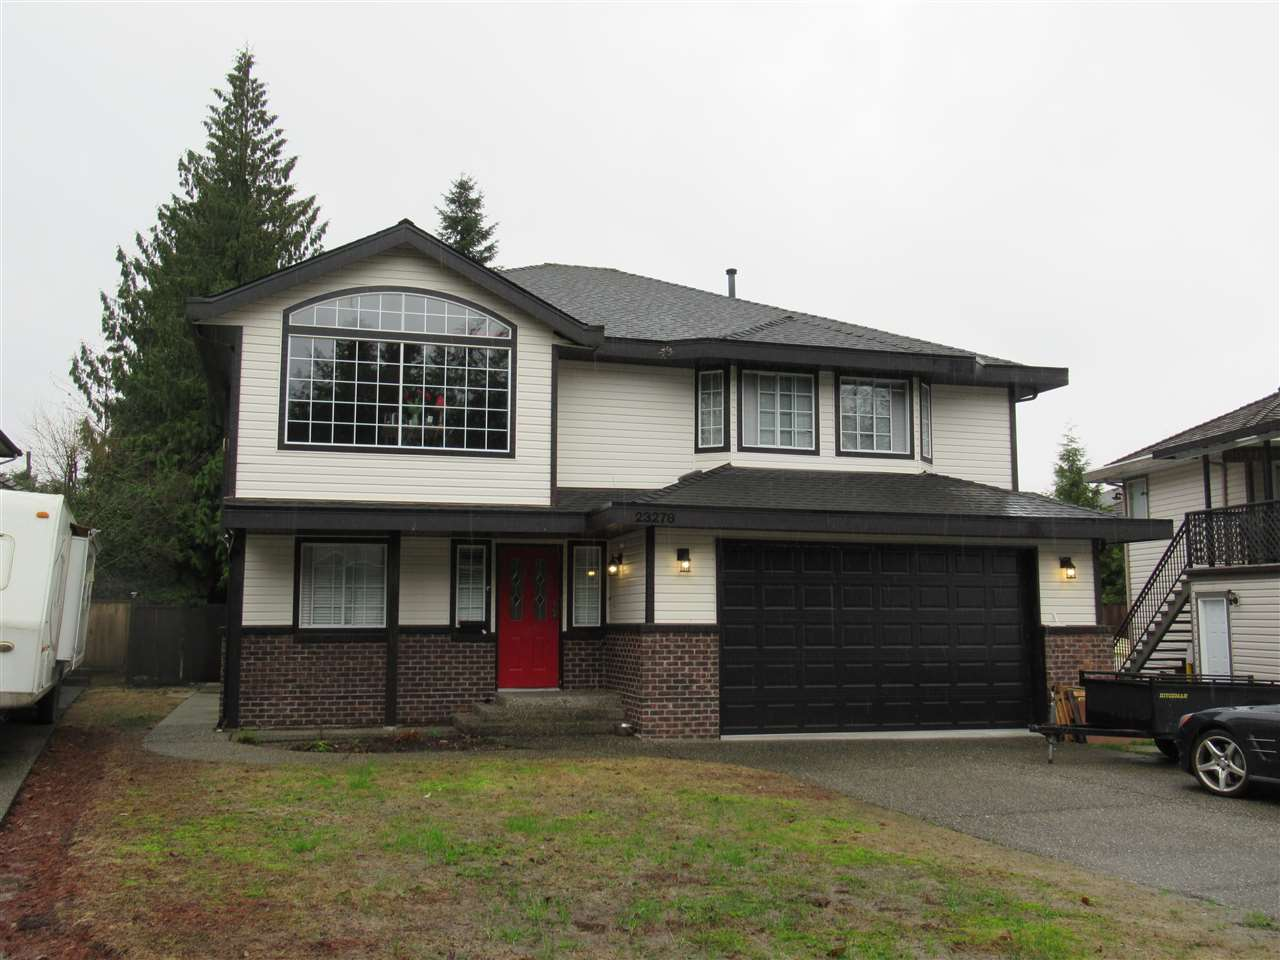 Beautiful family home on a quiet cul-de-sac. Basement entry home with a 1 bedroom ground level basement suite. 3 bedrooms up with 2 baths and a family room as well. Lovely large deck overlooking the oversized completely fenced in backyard. Kitchen is bright and spacious connected to the family room. Double car garage with room for RV parking as well. Nice views of Golden Ears from the large Living Room window. Home is 2,518 sq. ft. in size and the flat level lot is 7,170 sq. ft.